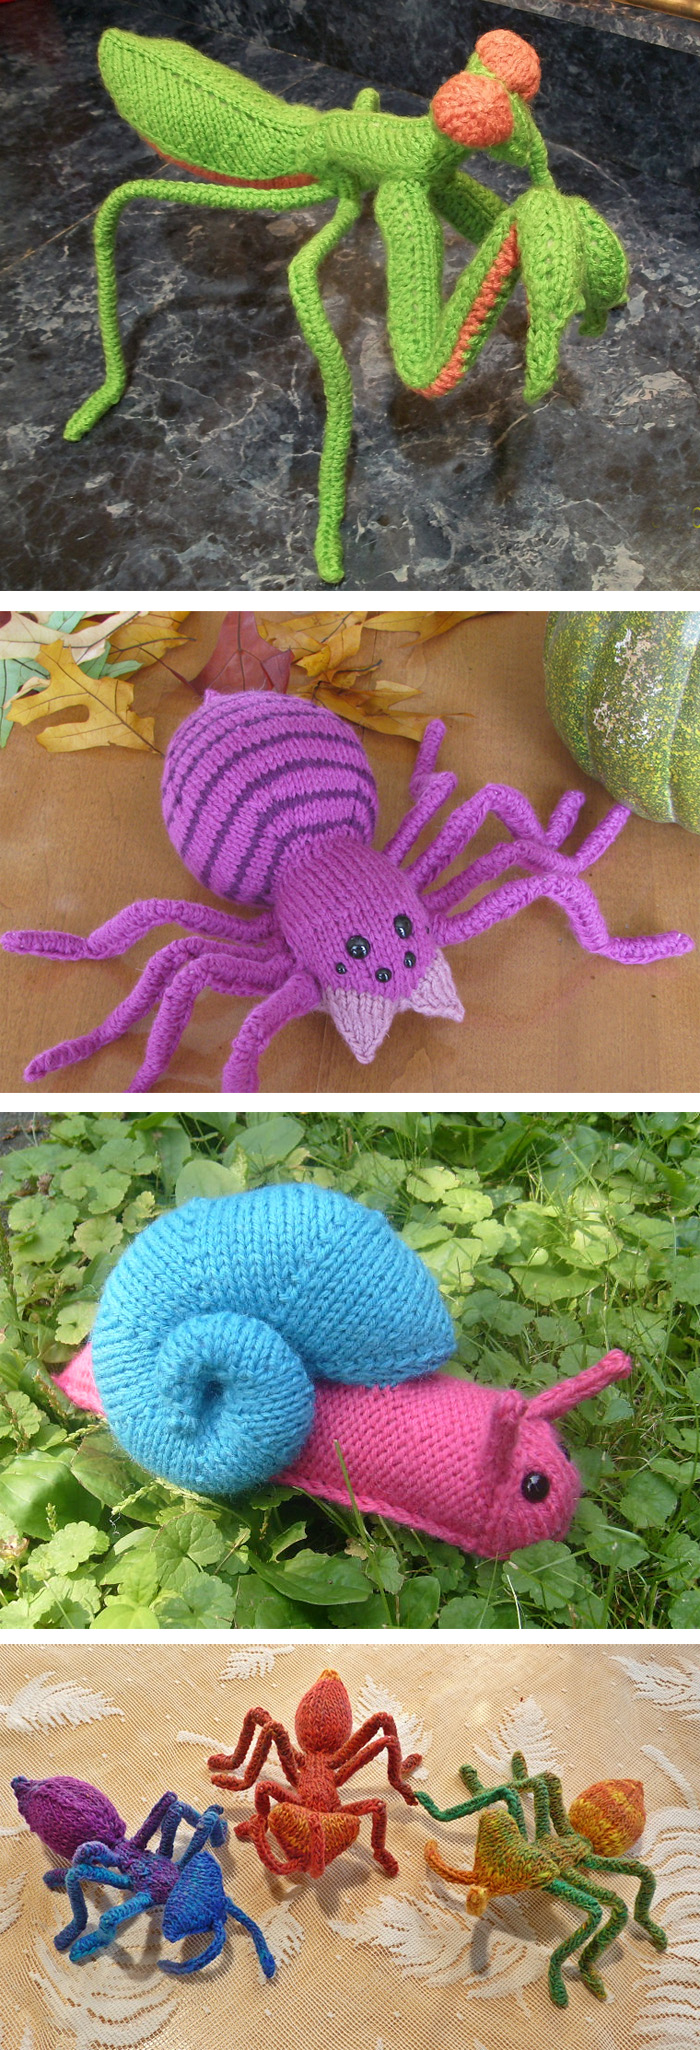 Knitting Patterns for Praying Mantis, Spider, Garden Snail, and Ant